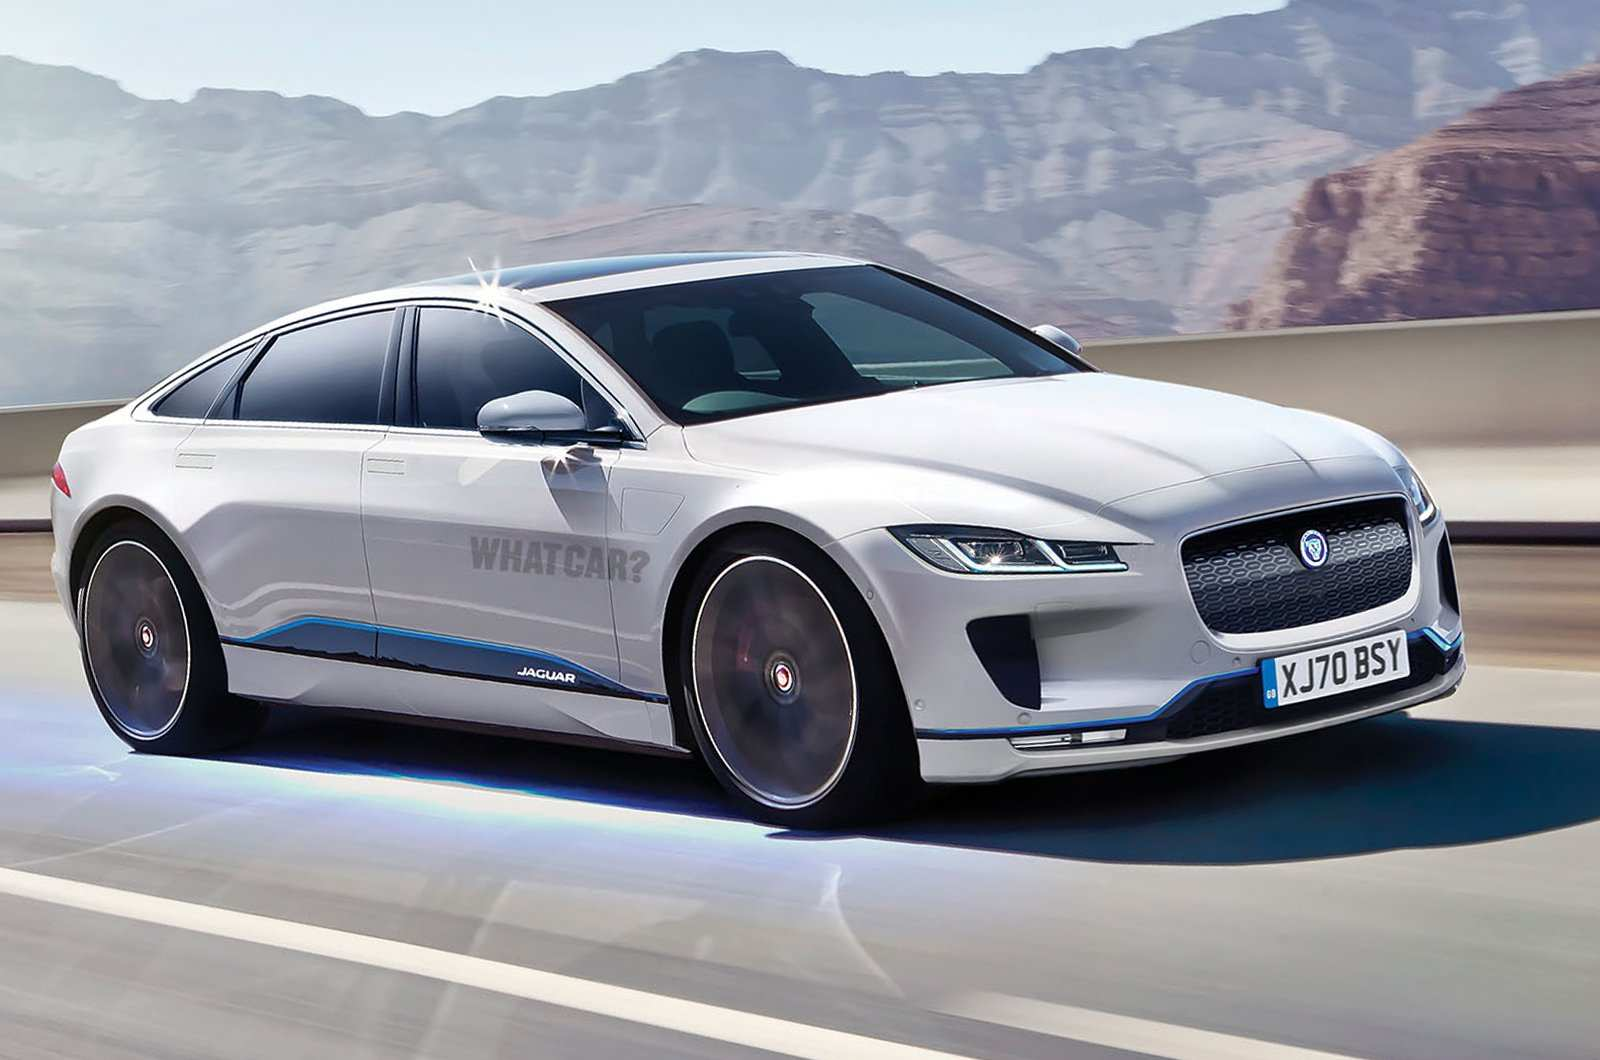 89 All New 2020 Jaguar Xj Redesign Exterior for 2020 Jaguar Xj Redesign